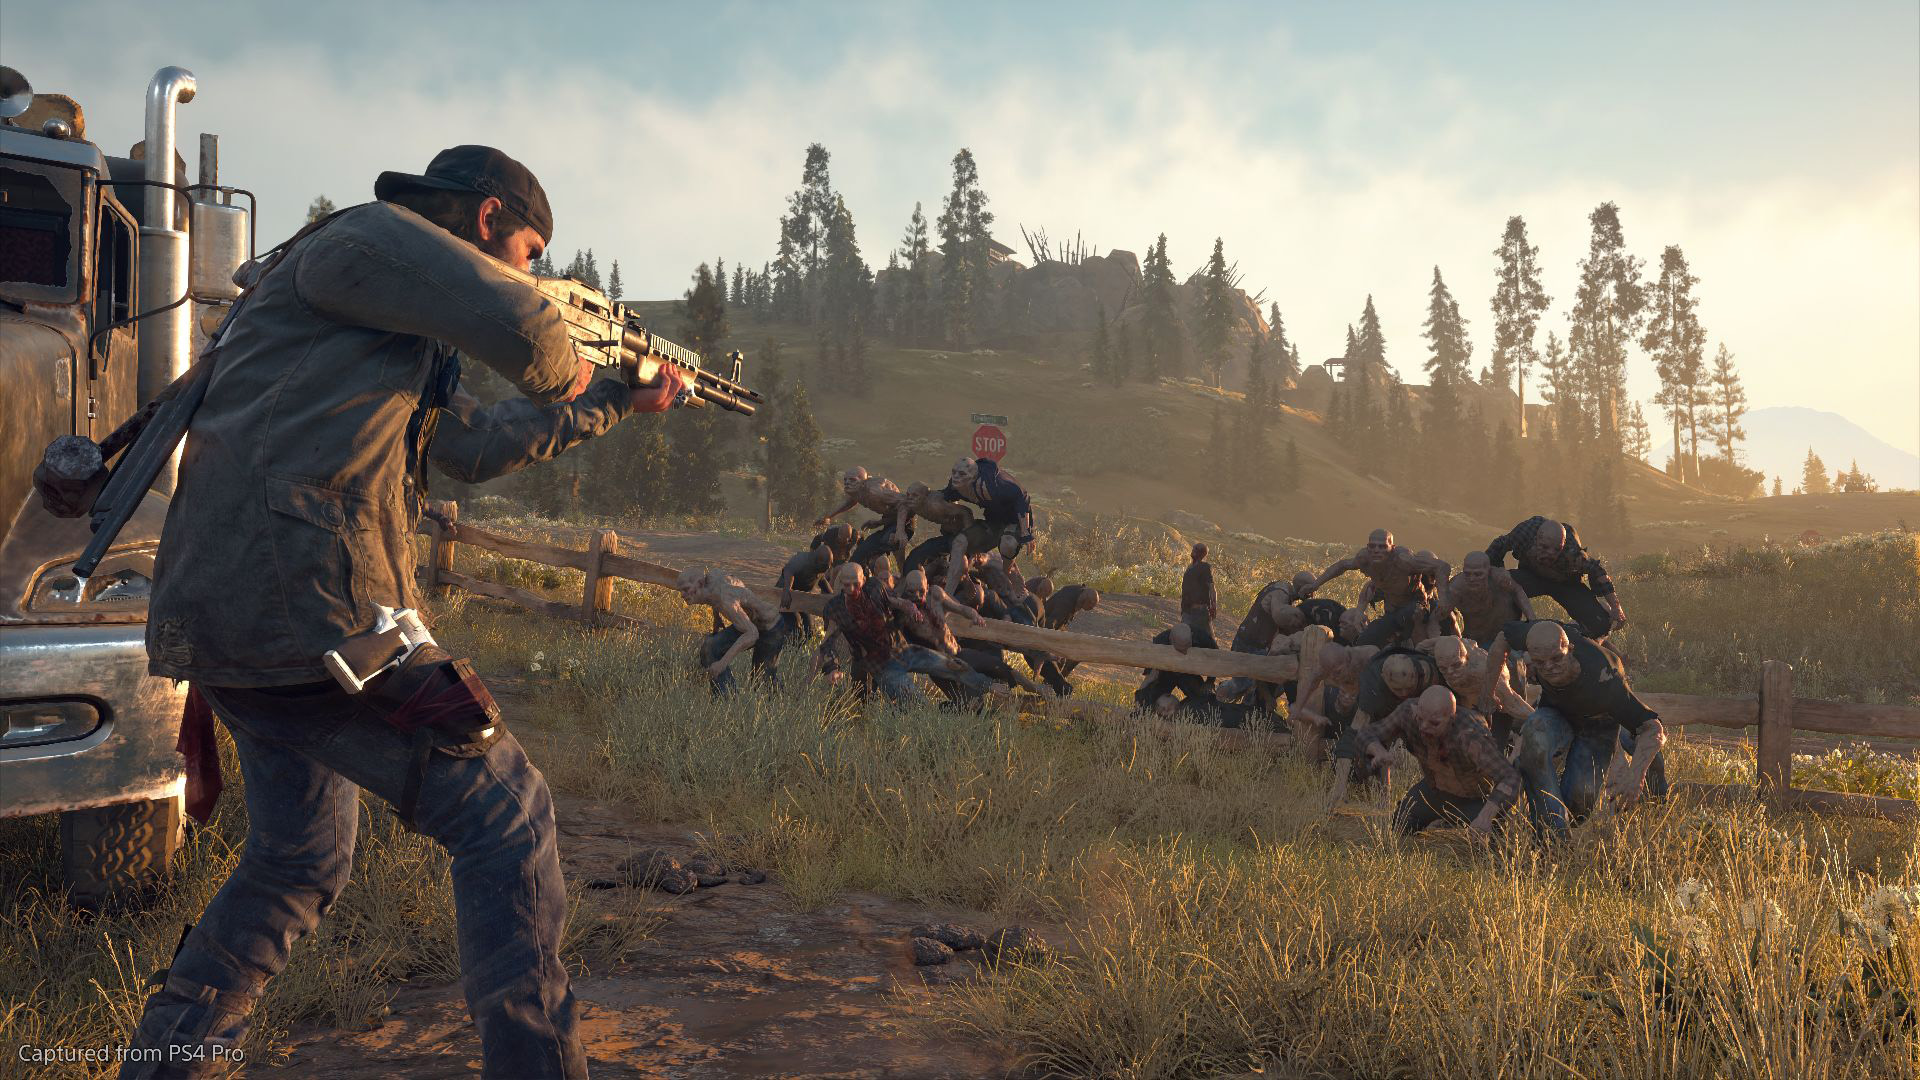 days gone jogabilidade geral analise critica review